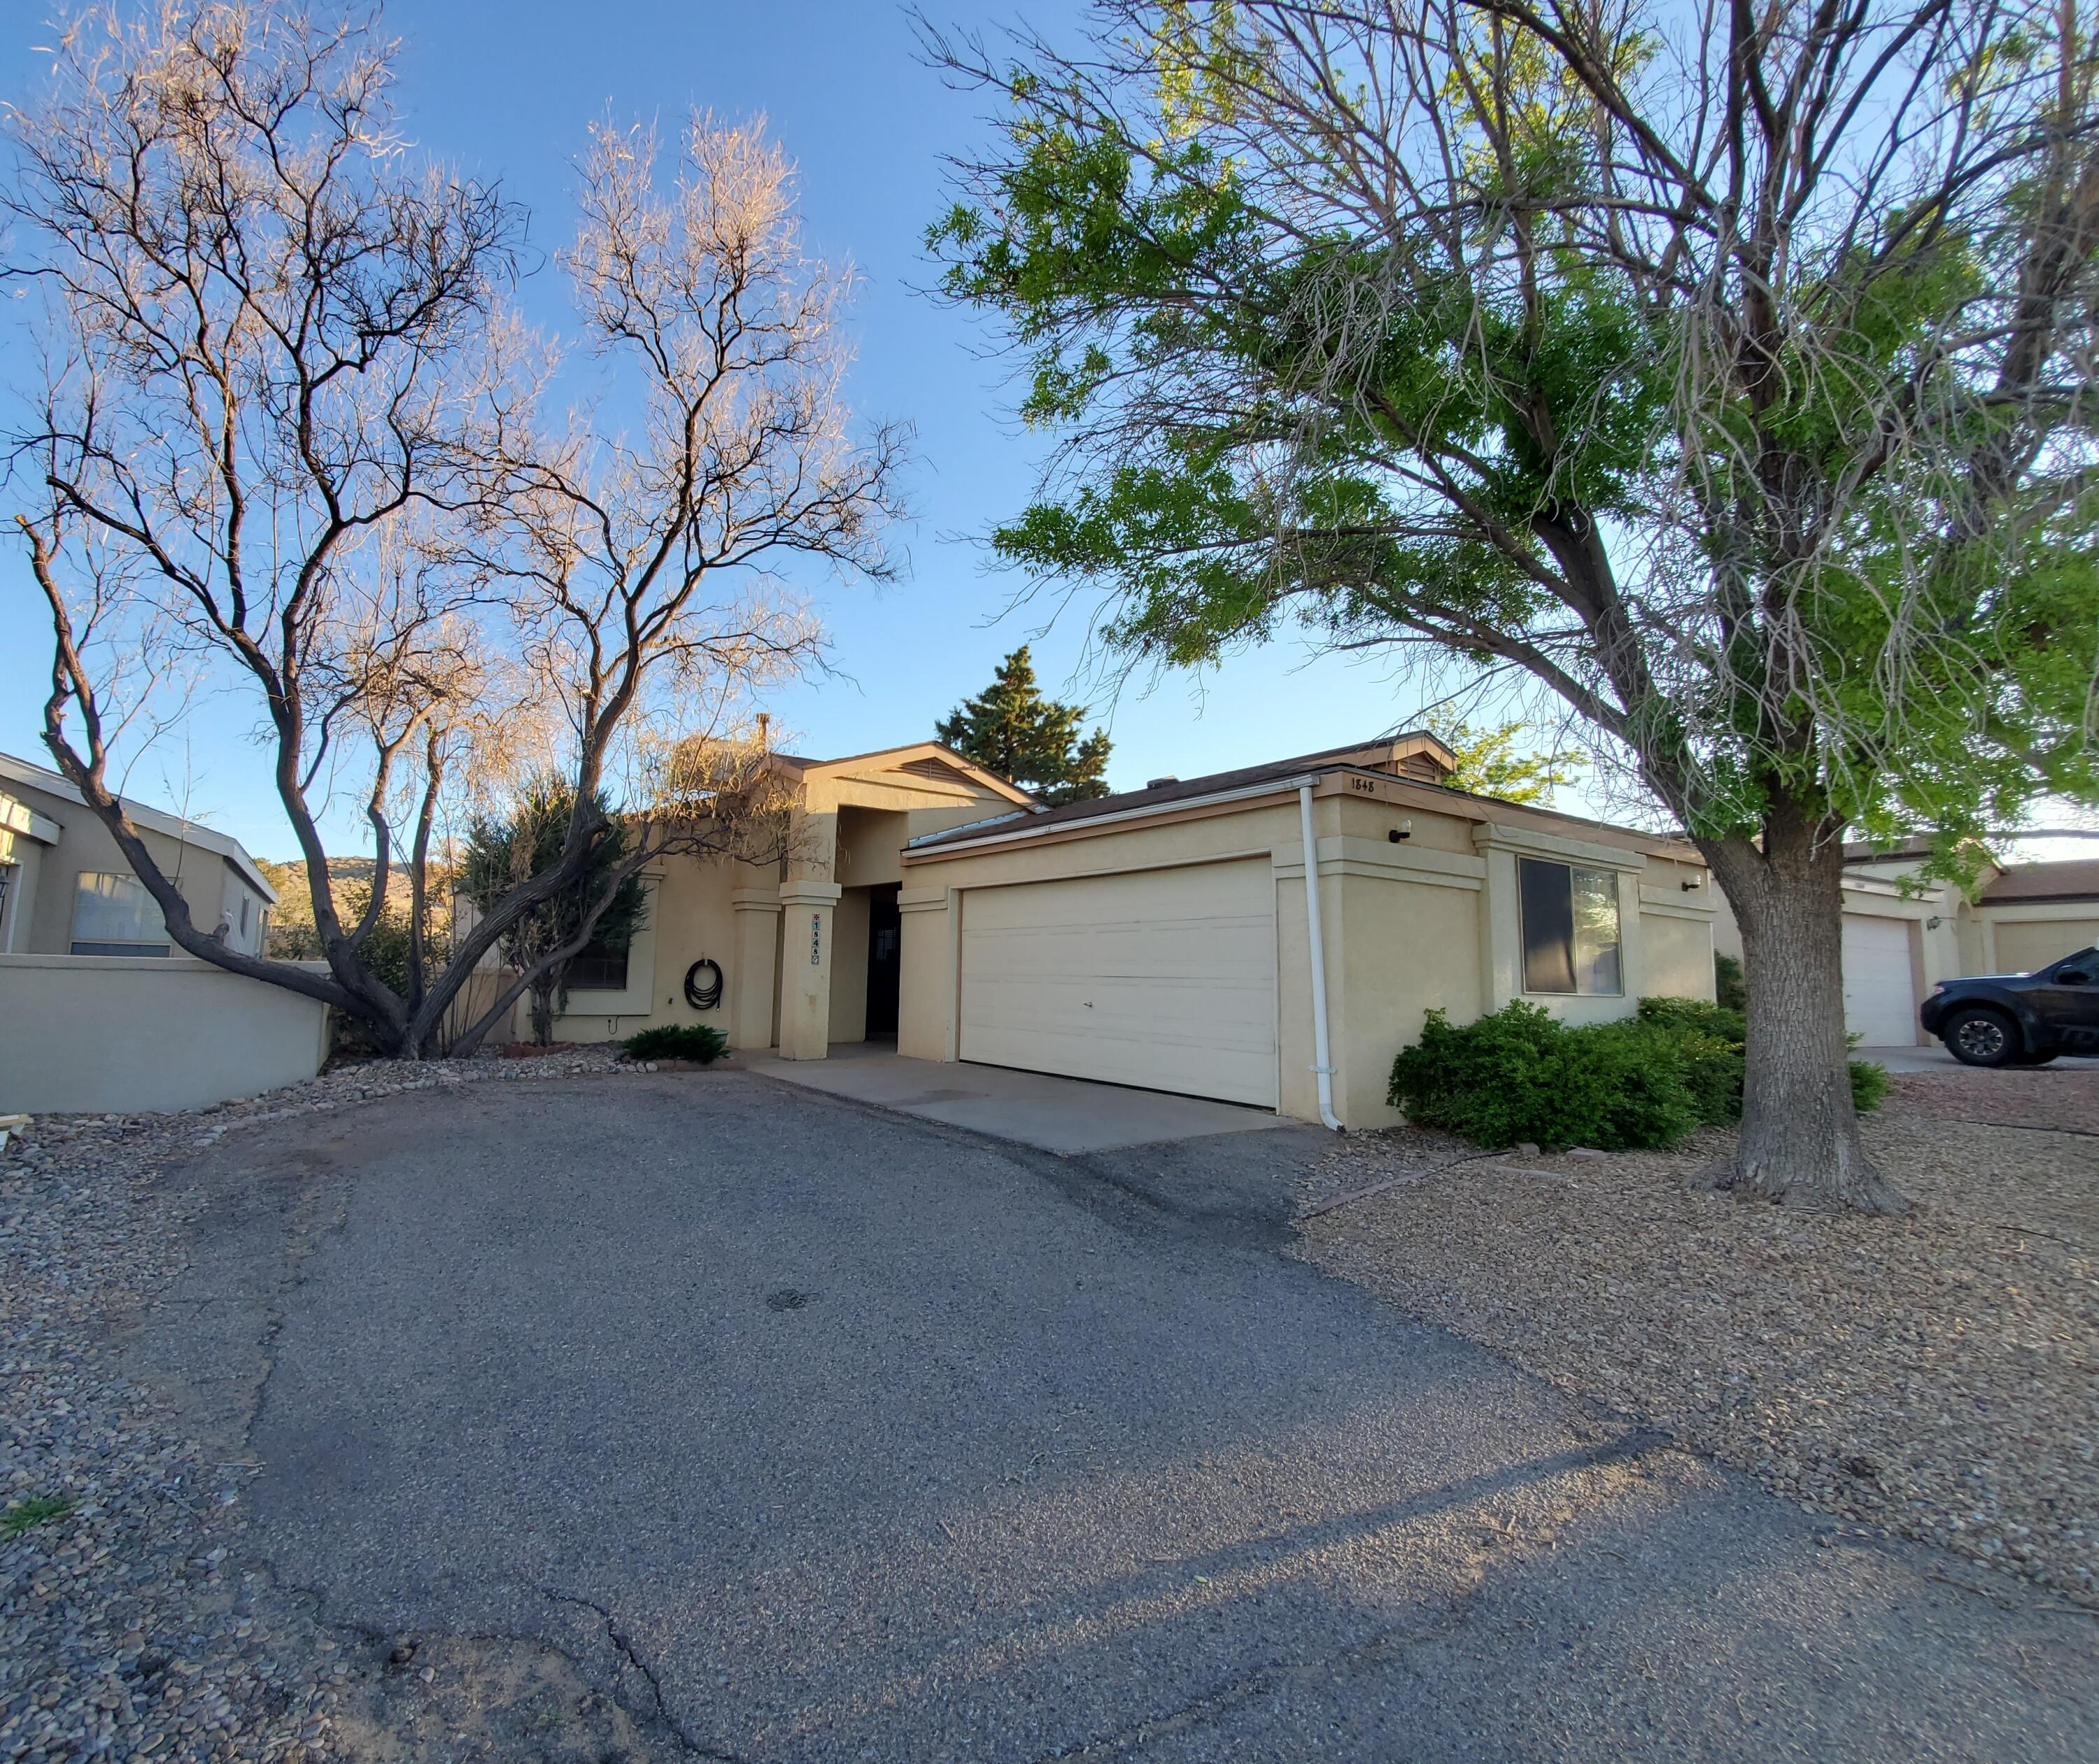 Beautiful updated home with 2 bedroom 2 bath and a 2 car finished garage. House is move in ready refrigerator, washer and  dryer are included.  Raised ceilings, open floor plan and tile in all areas but bedrooms. Bedroom closets are large with plenty of space for your items! The HOA maintains the front landscaping for easy living. Come see this new listing today!